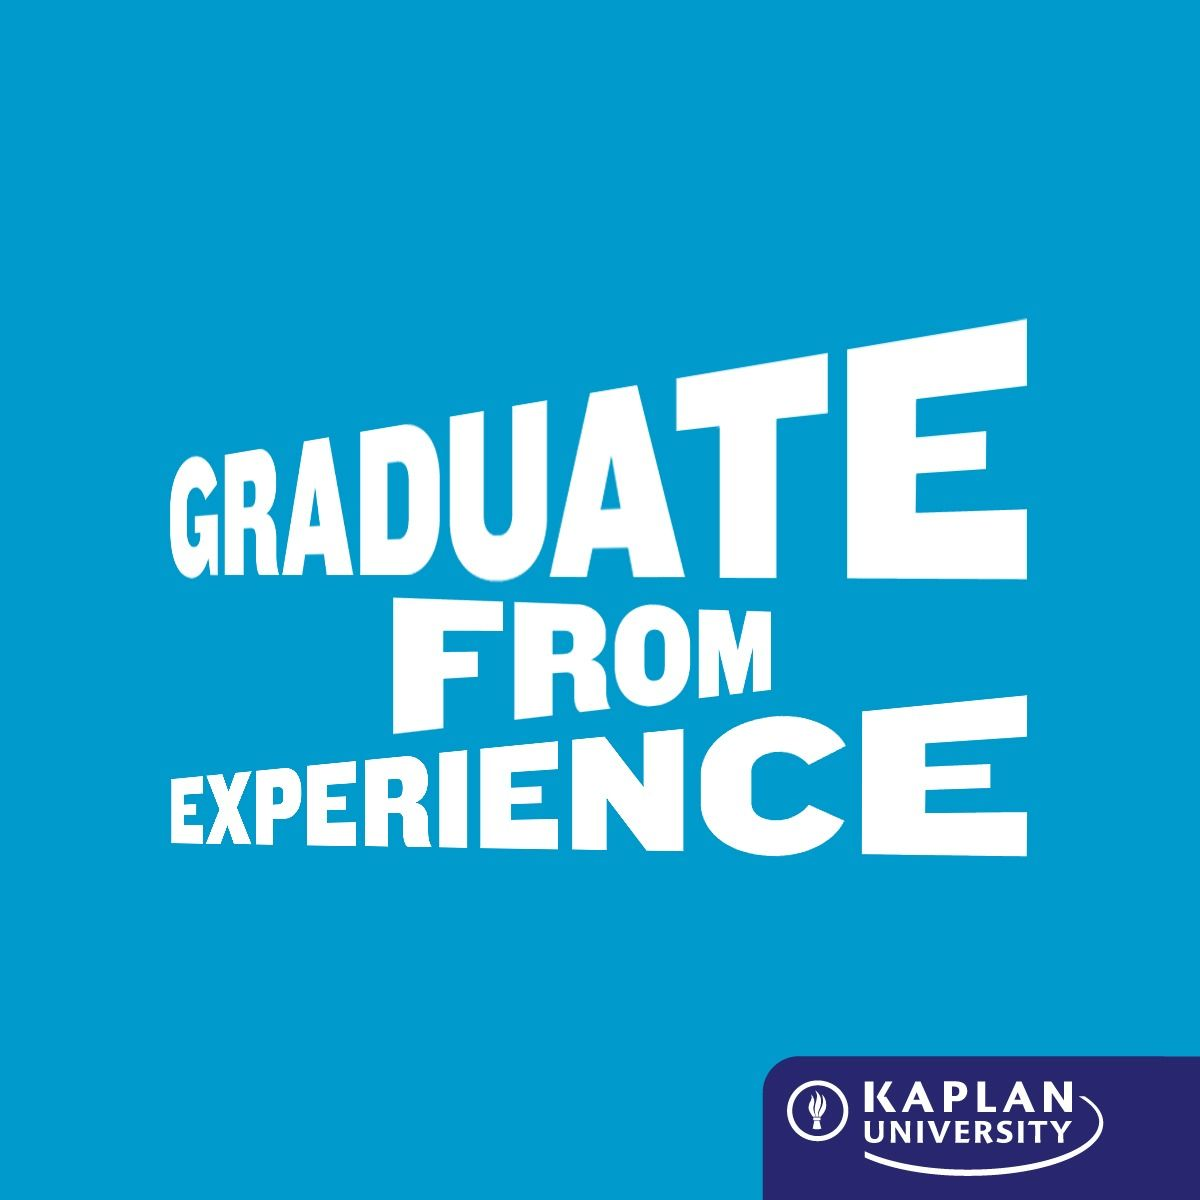 Learn more about earning course credit for job, military, or life experience at Kaplan University.